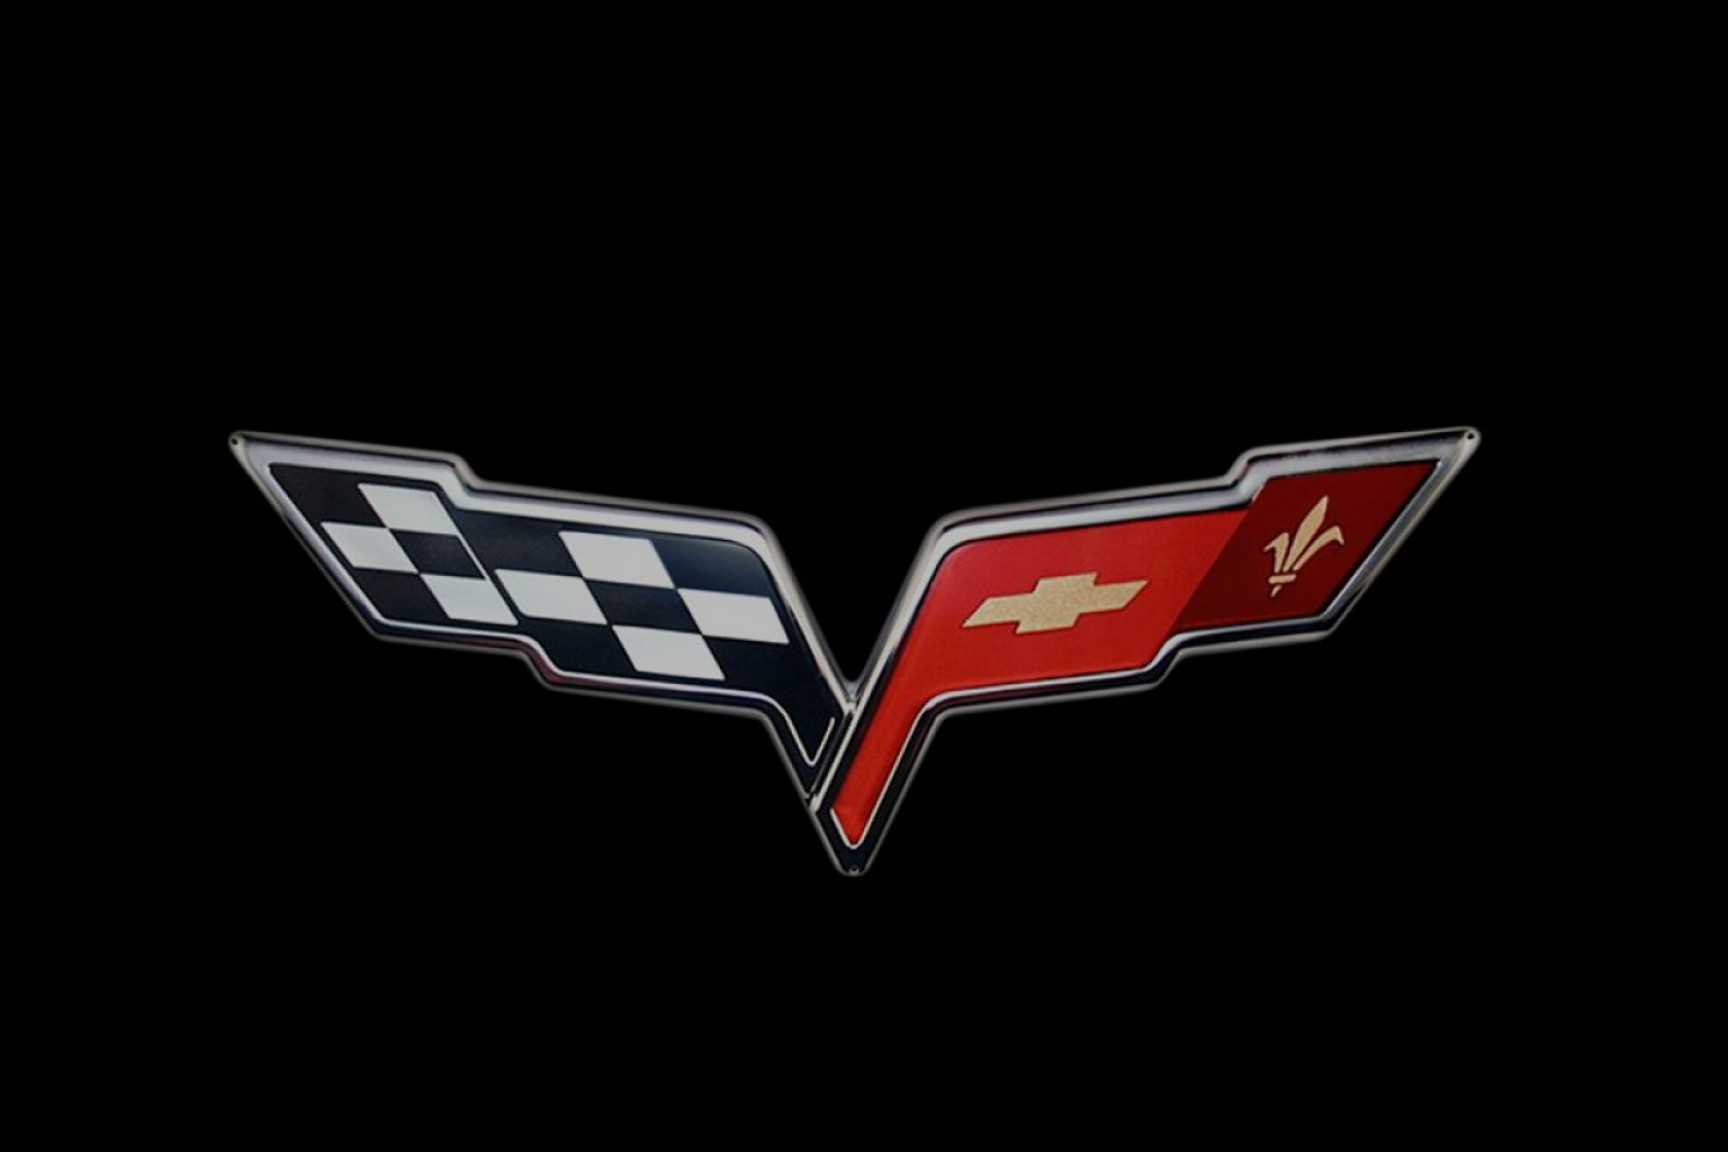 C7 Corvette Logo Vector: Simple Evolution Of The Corvette And The Crossed Flags Logo Ar